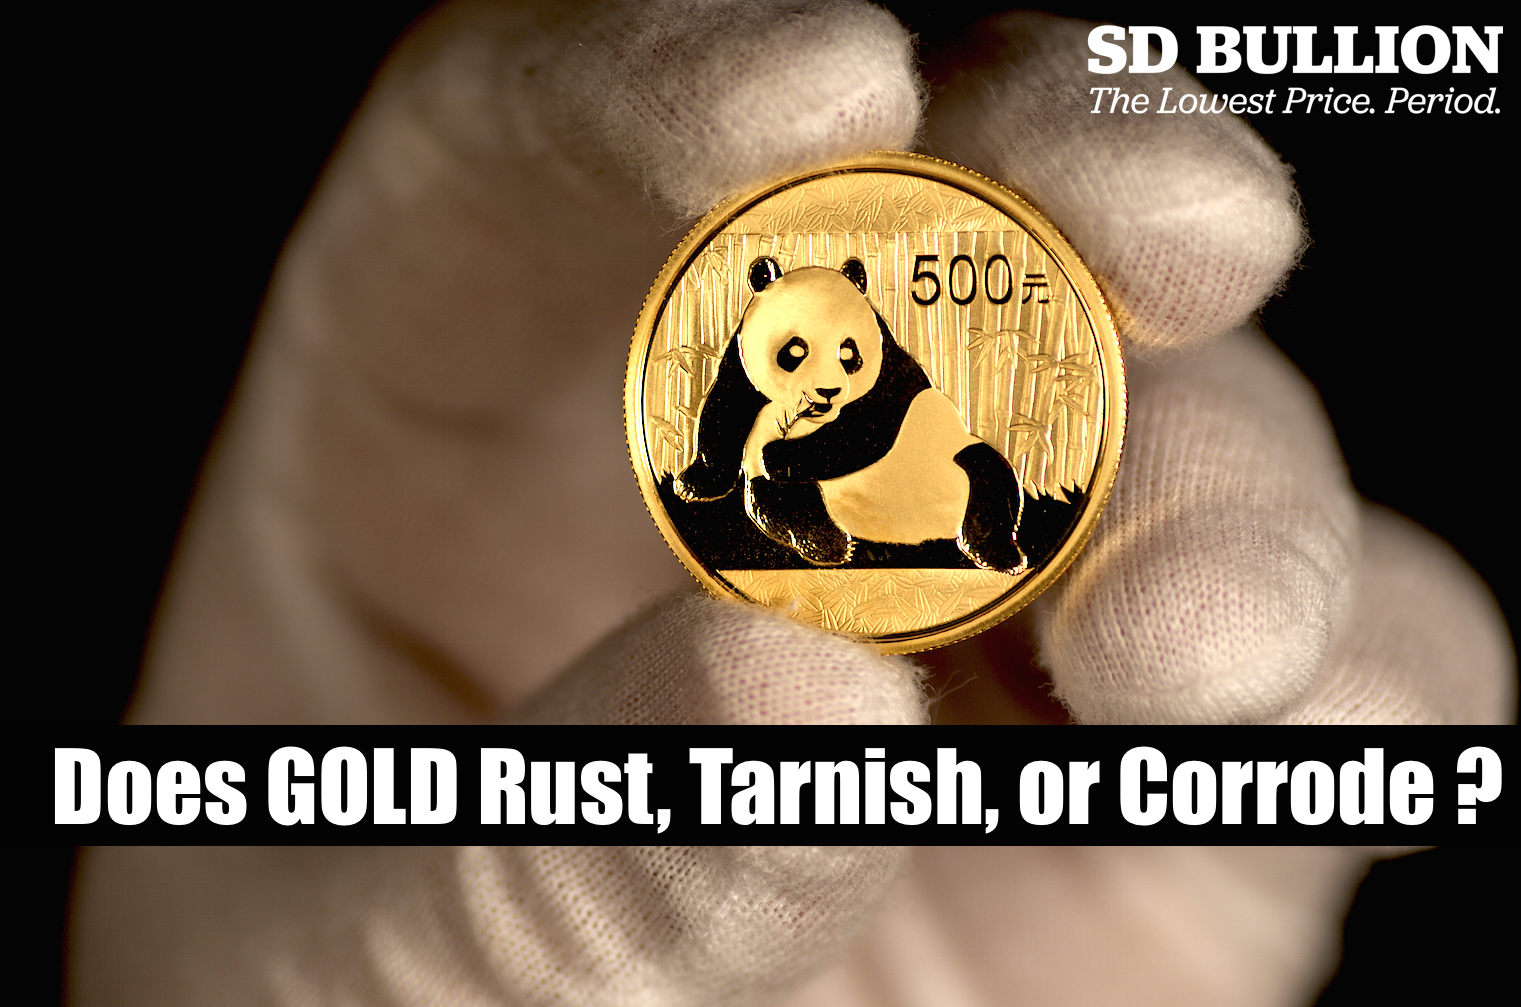 Does GOLD Rust, Tarnish, or Corrode?